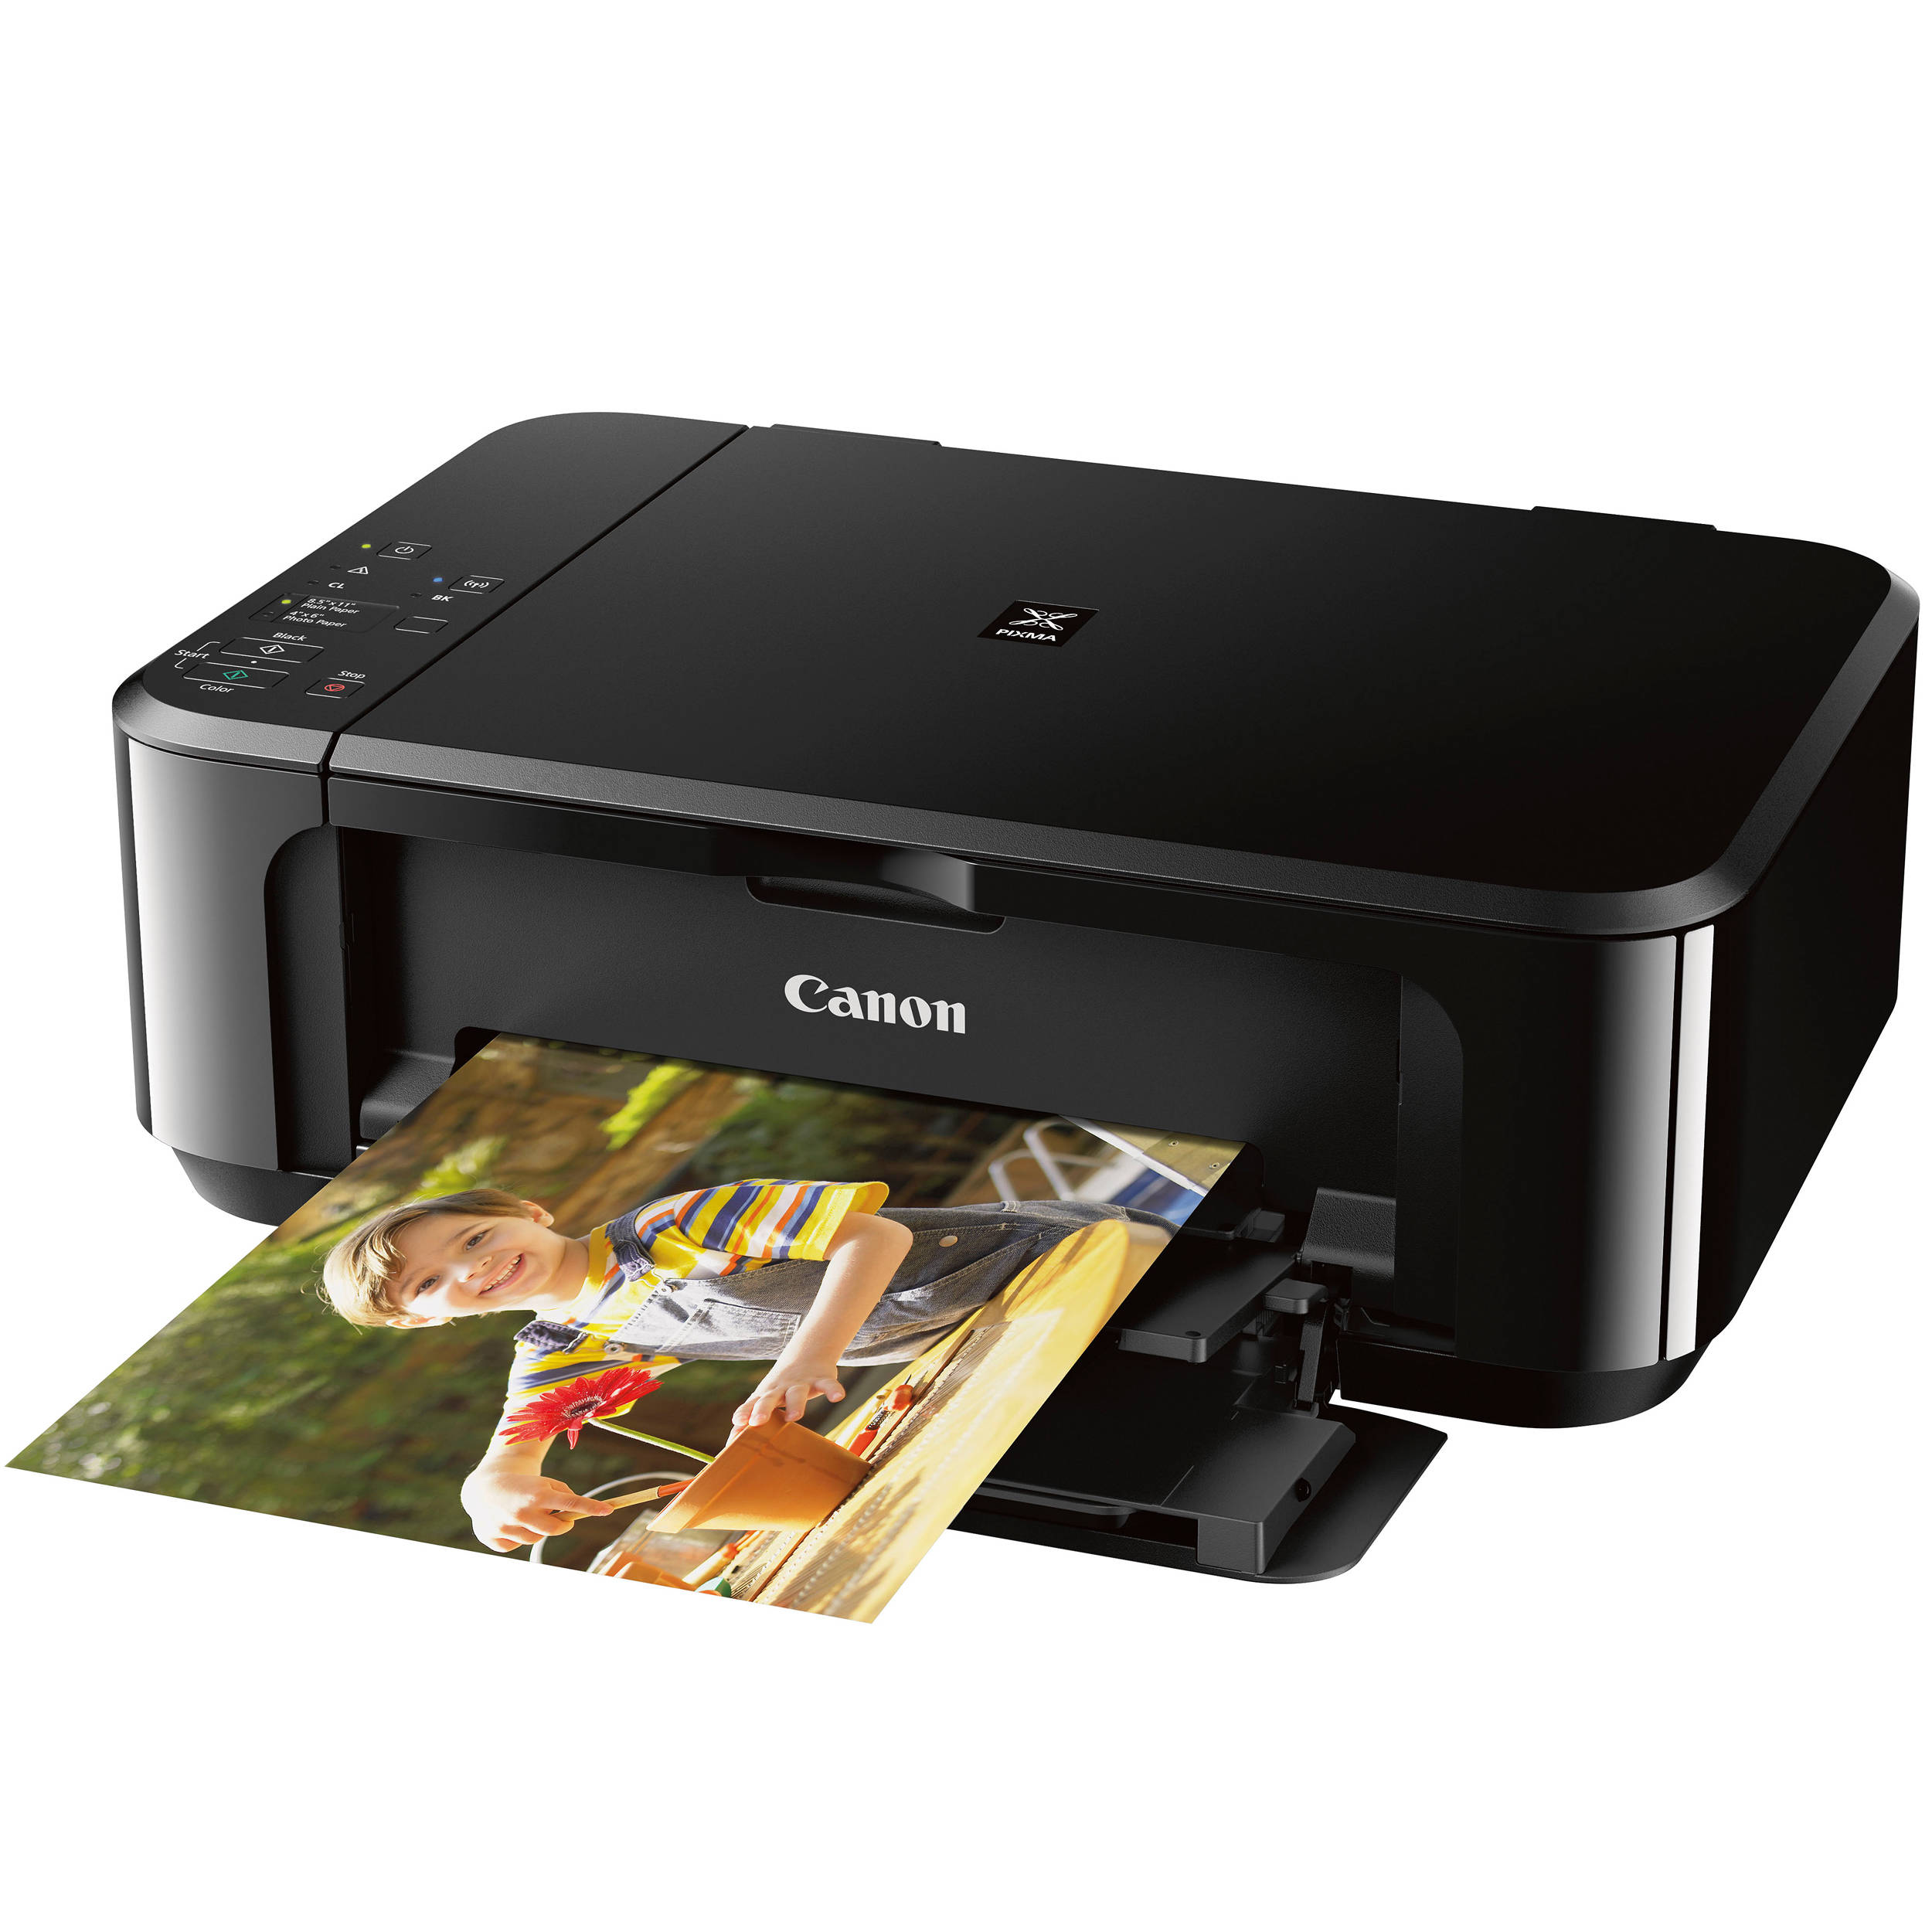 CANON 4100 SCANNER WINDOWS 7 X64 TREIBER